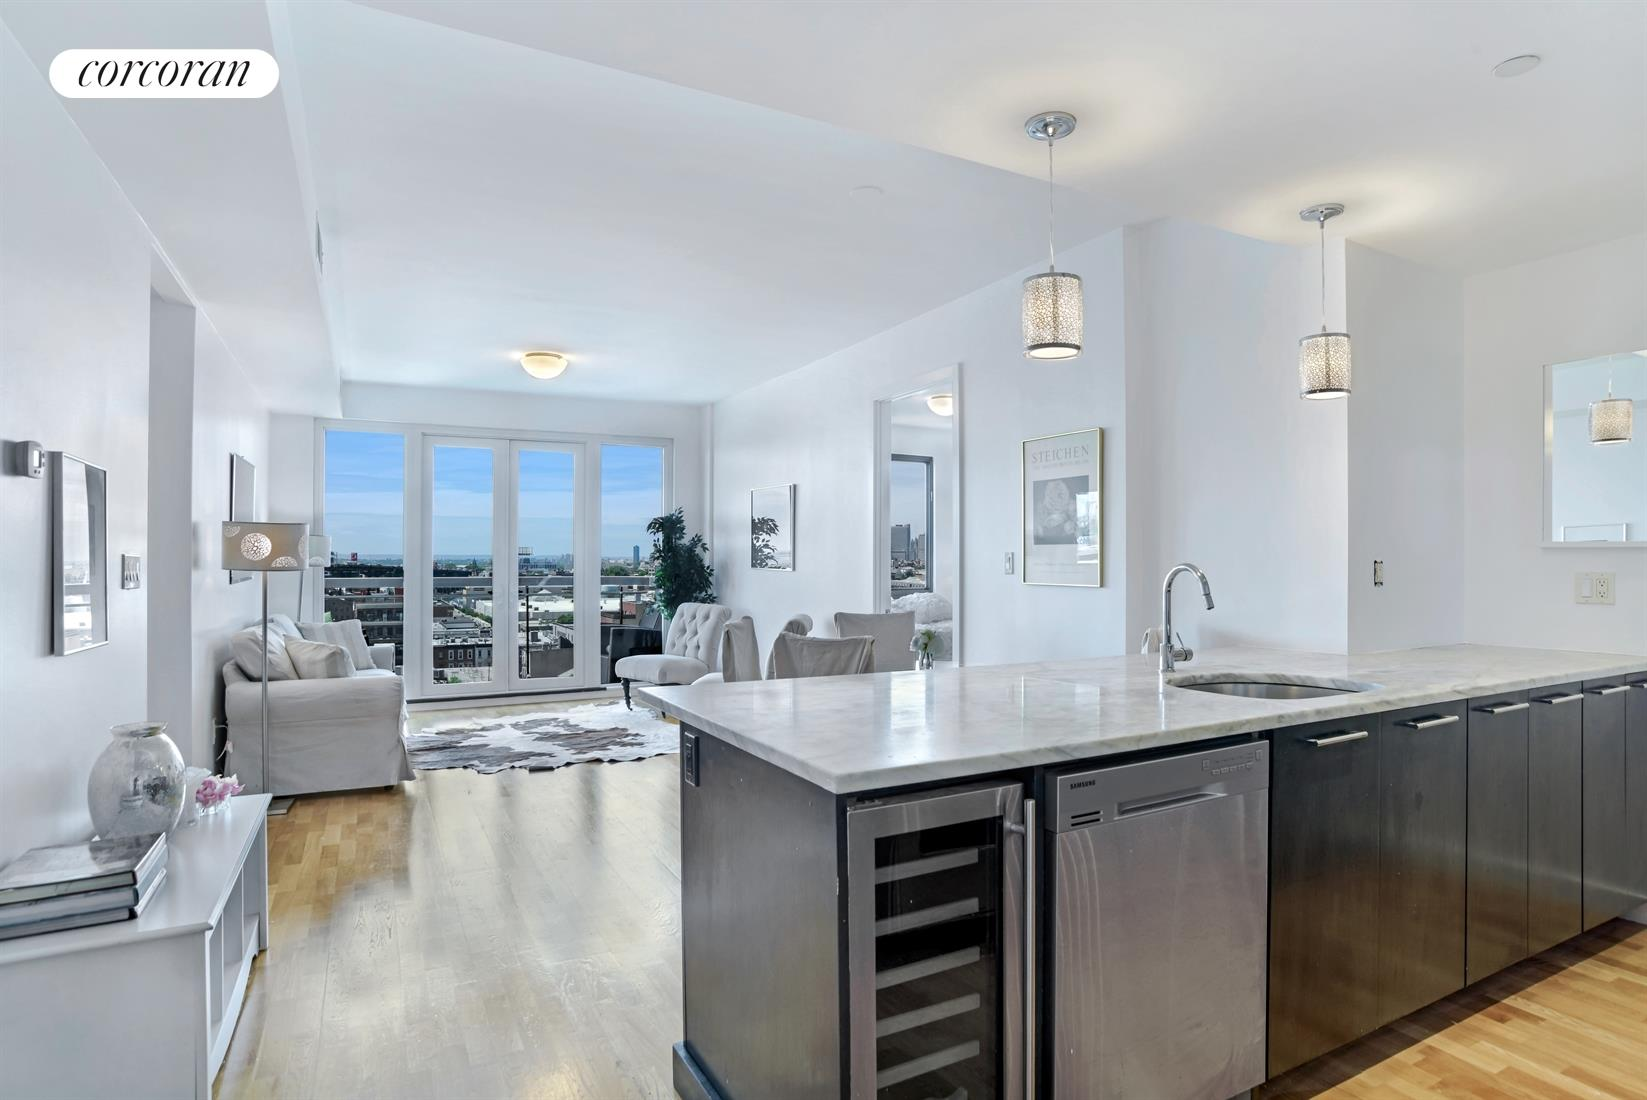 Corcoran, Tracey McLean, Park Slope 125 Seventh Avenue Realtor, Real ...